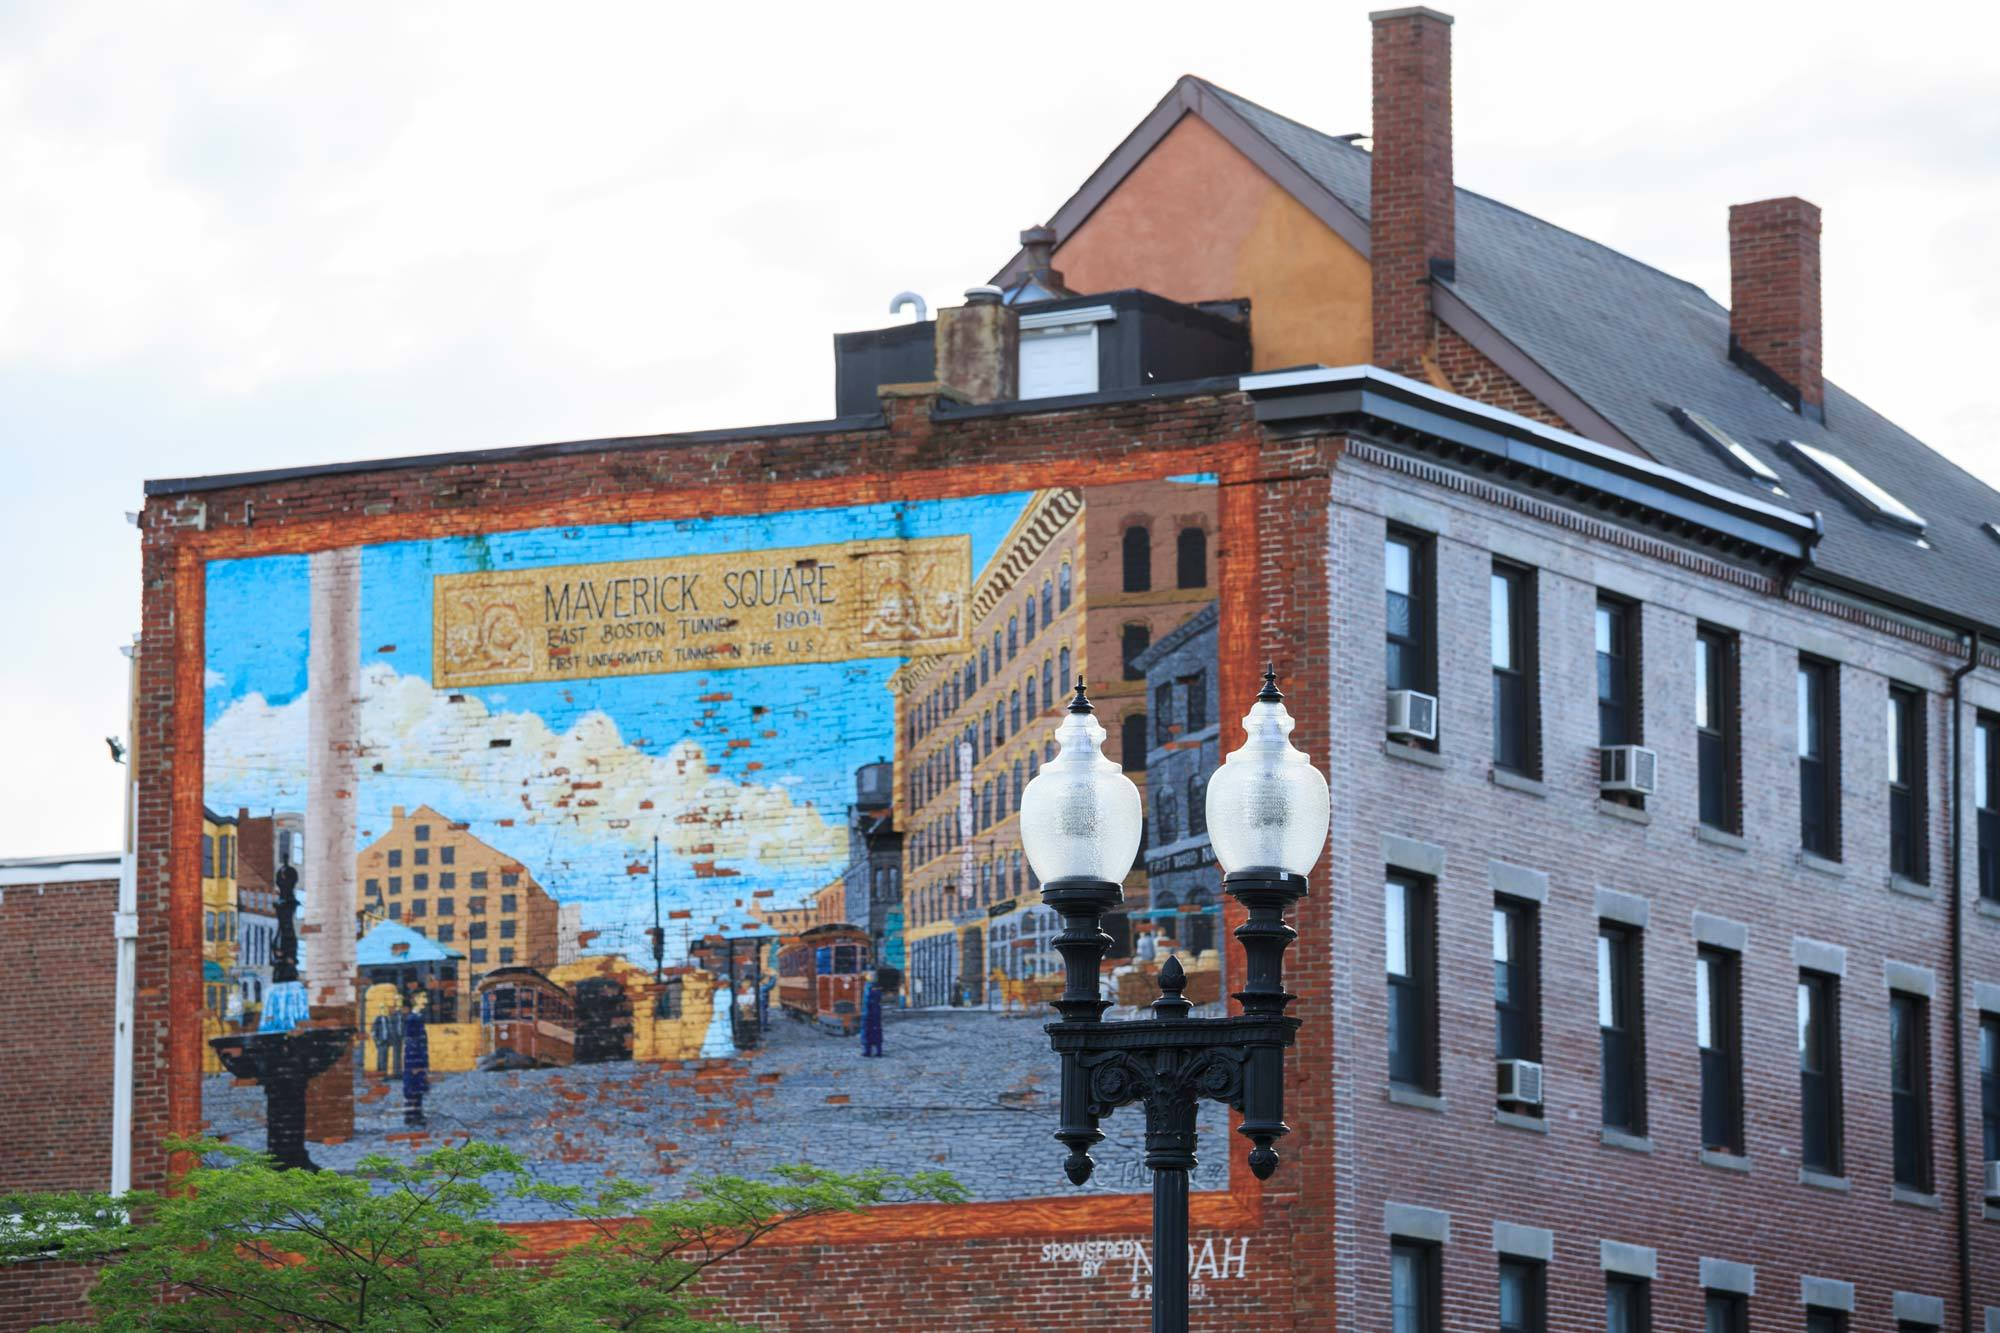 East Boston Maverick Square mural